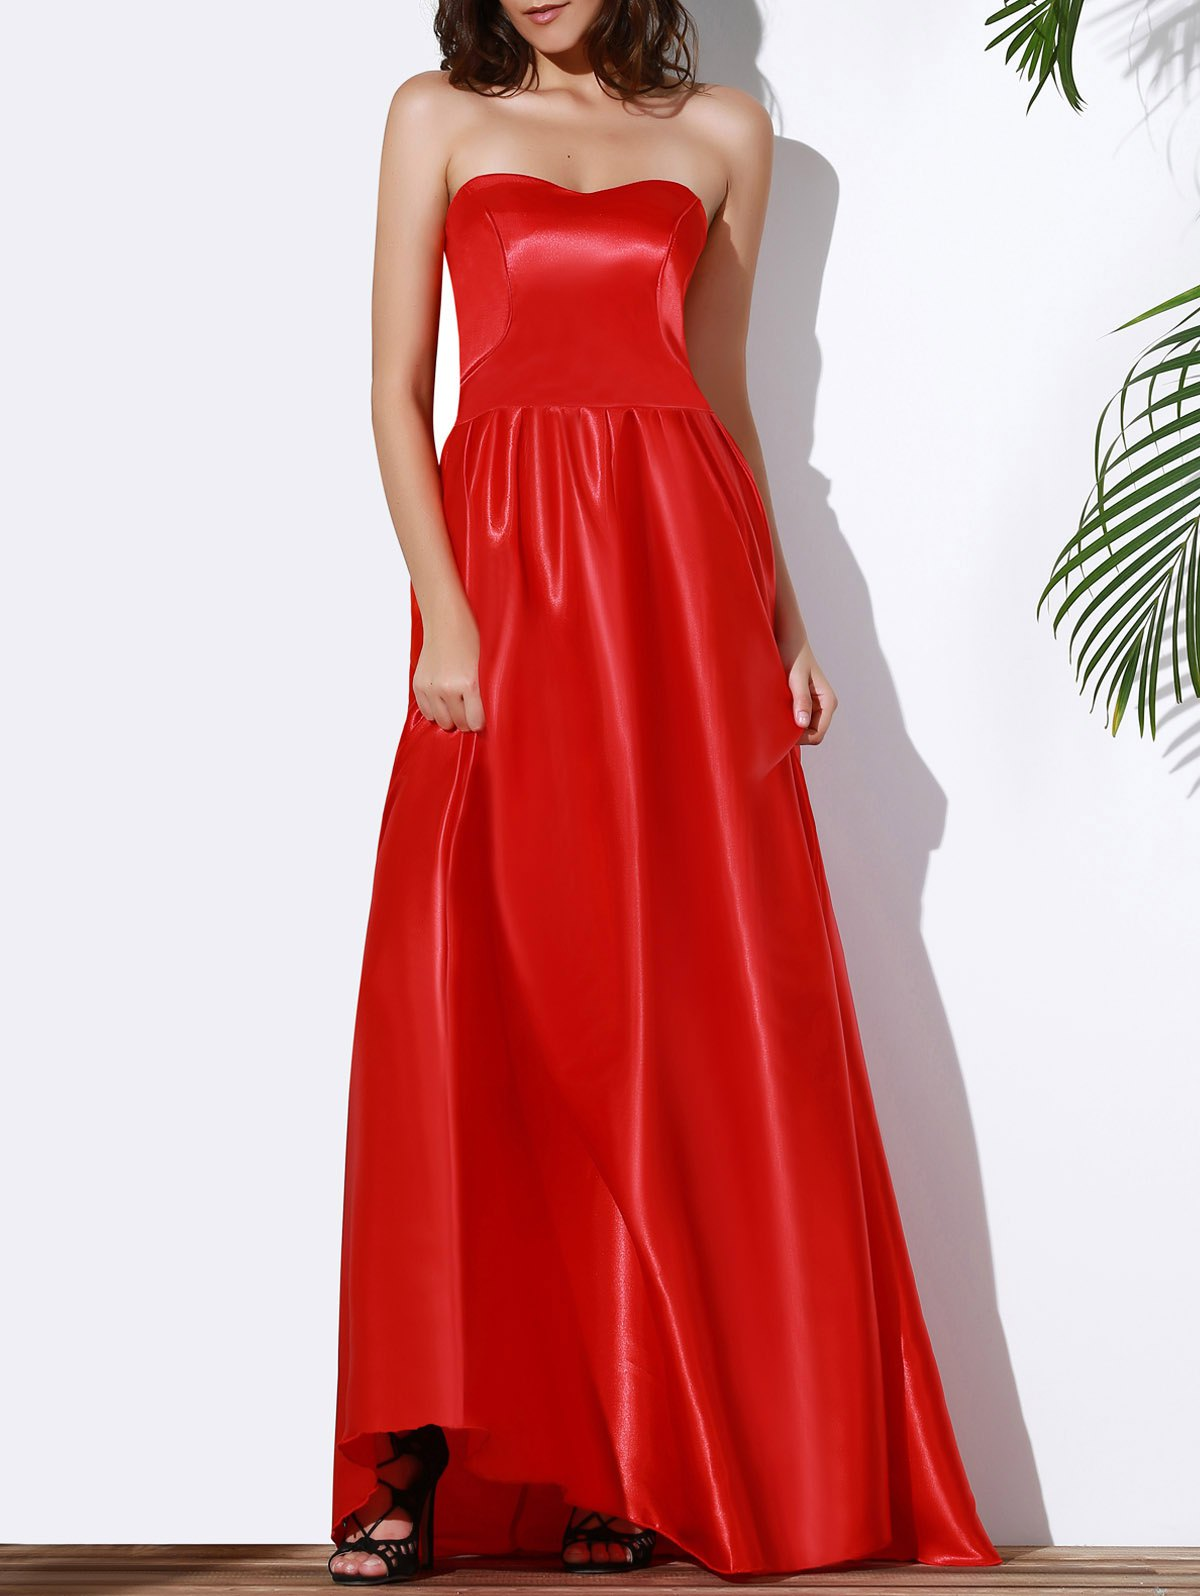 Sexy Women's Strapless Red Maxi Dress - RED L